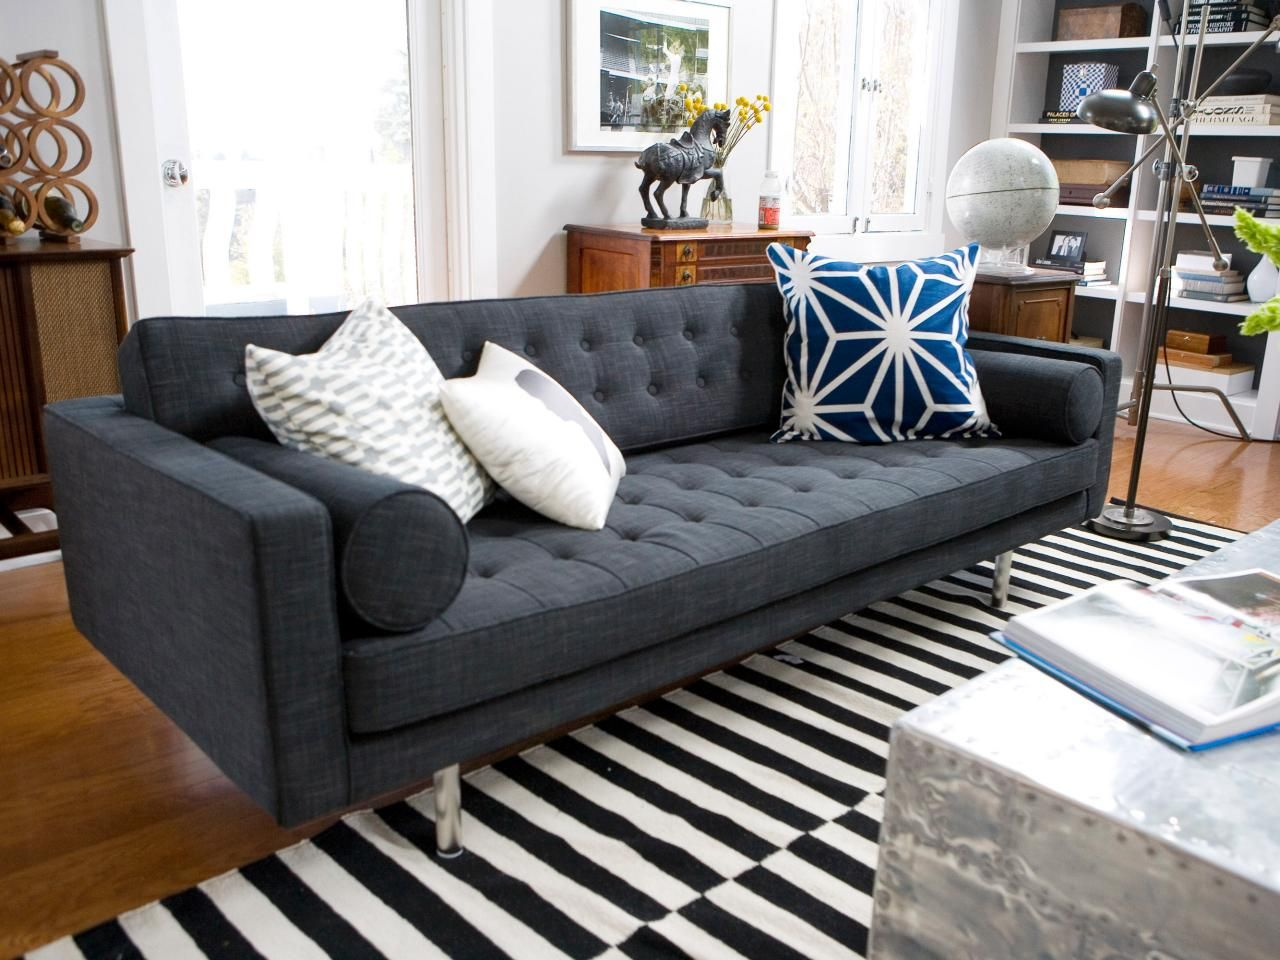 This Midcentury Modern Gray Tufted Sofa Adds A Hip Vibe To